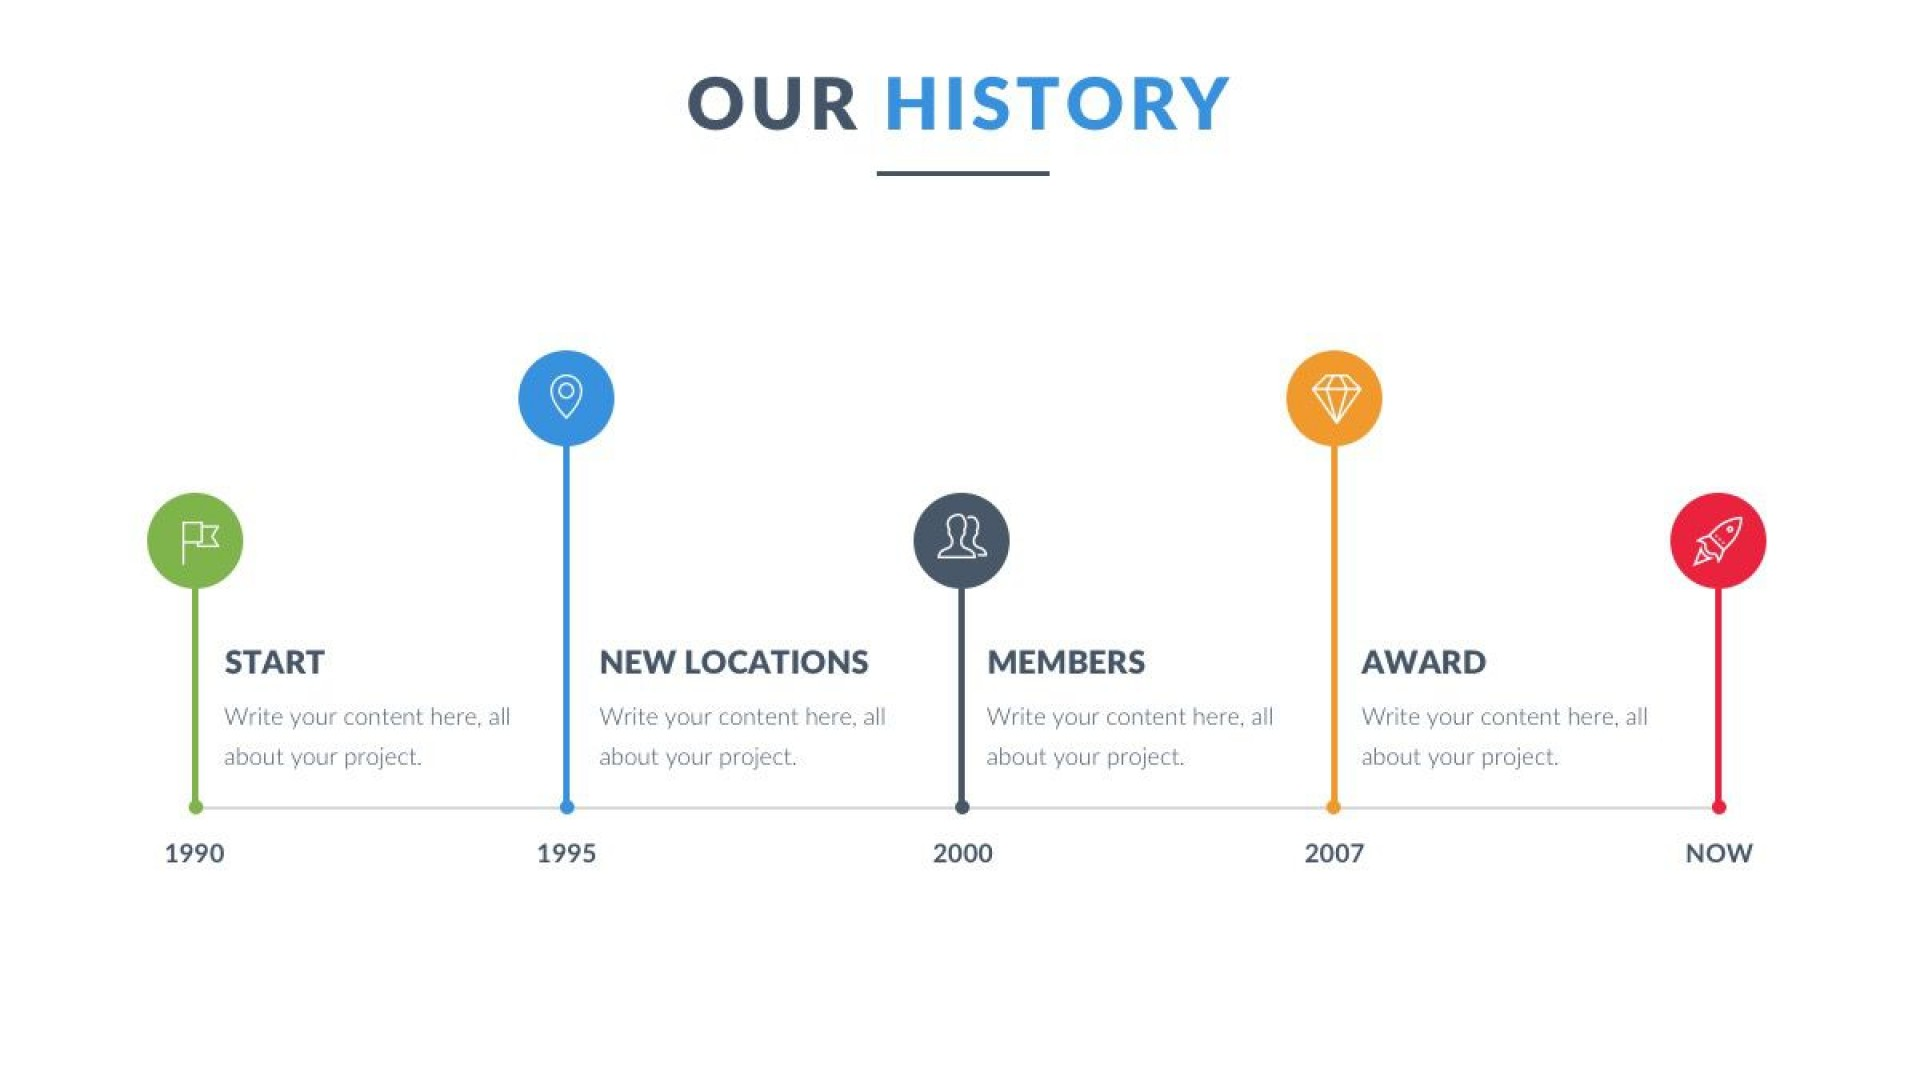 008 Amazing Timeline Format For Presentation High Def  Example Graph Template Powerpoint Download1920